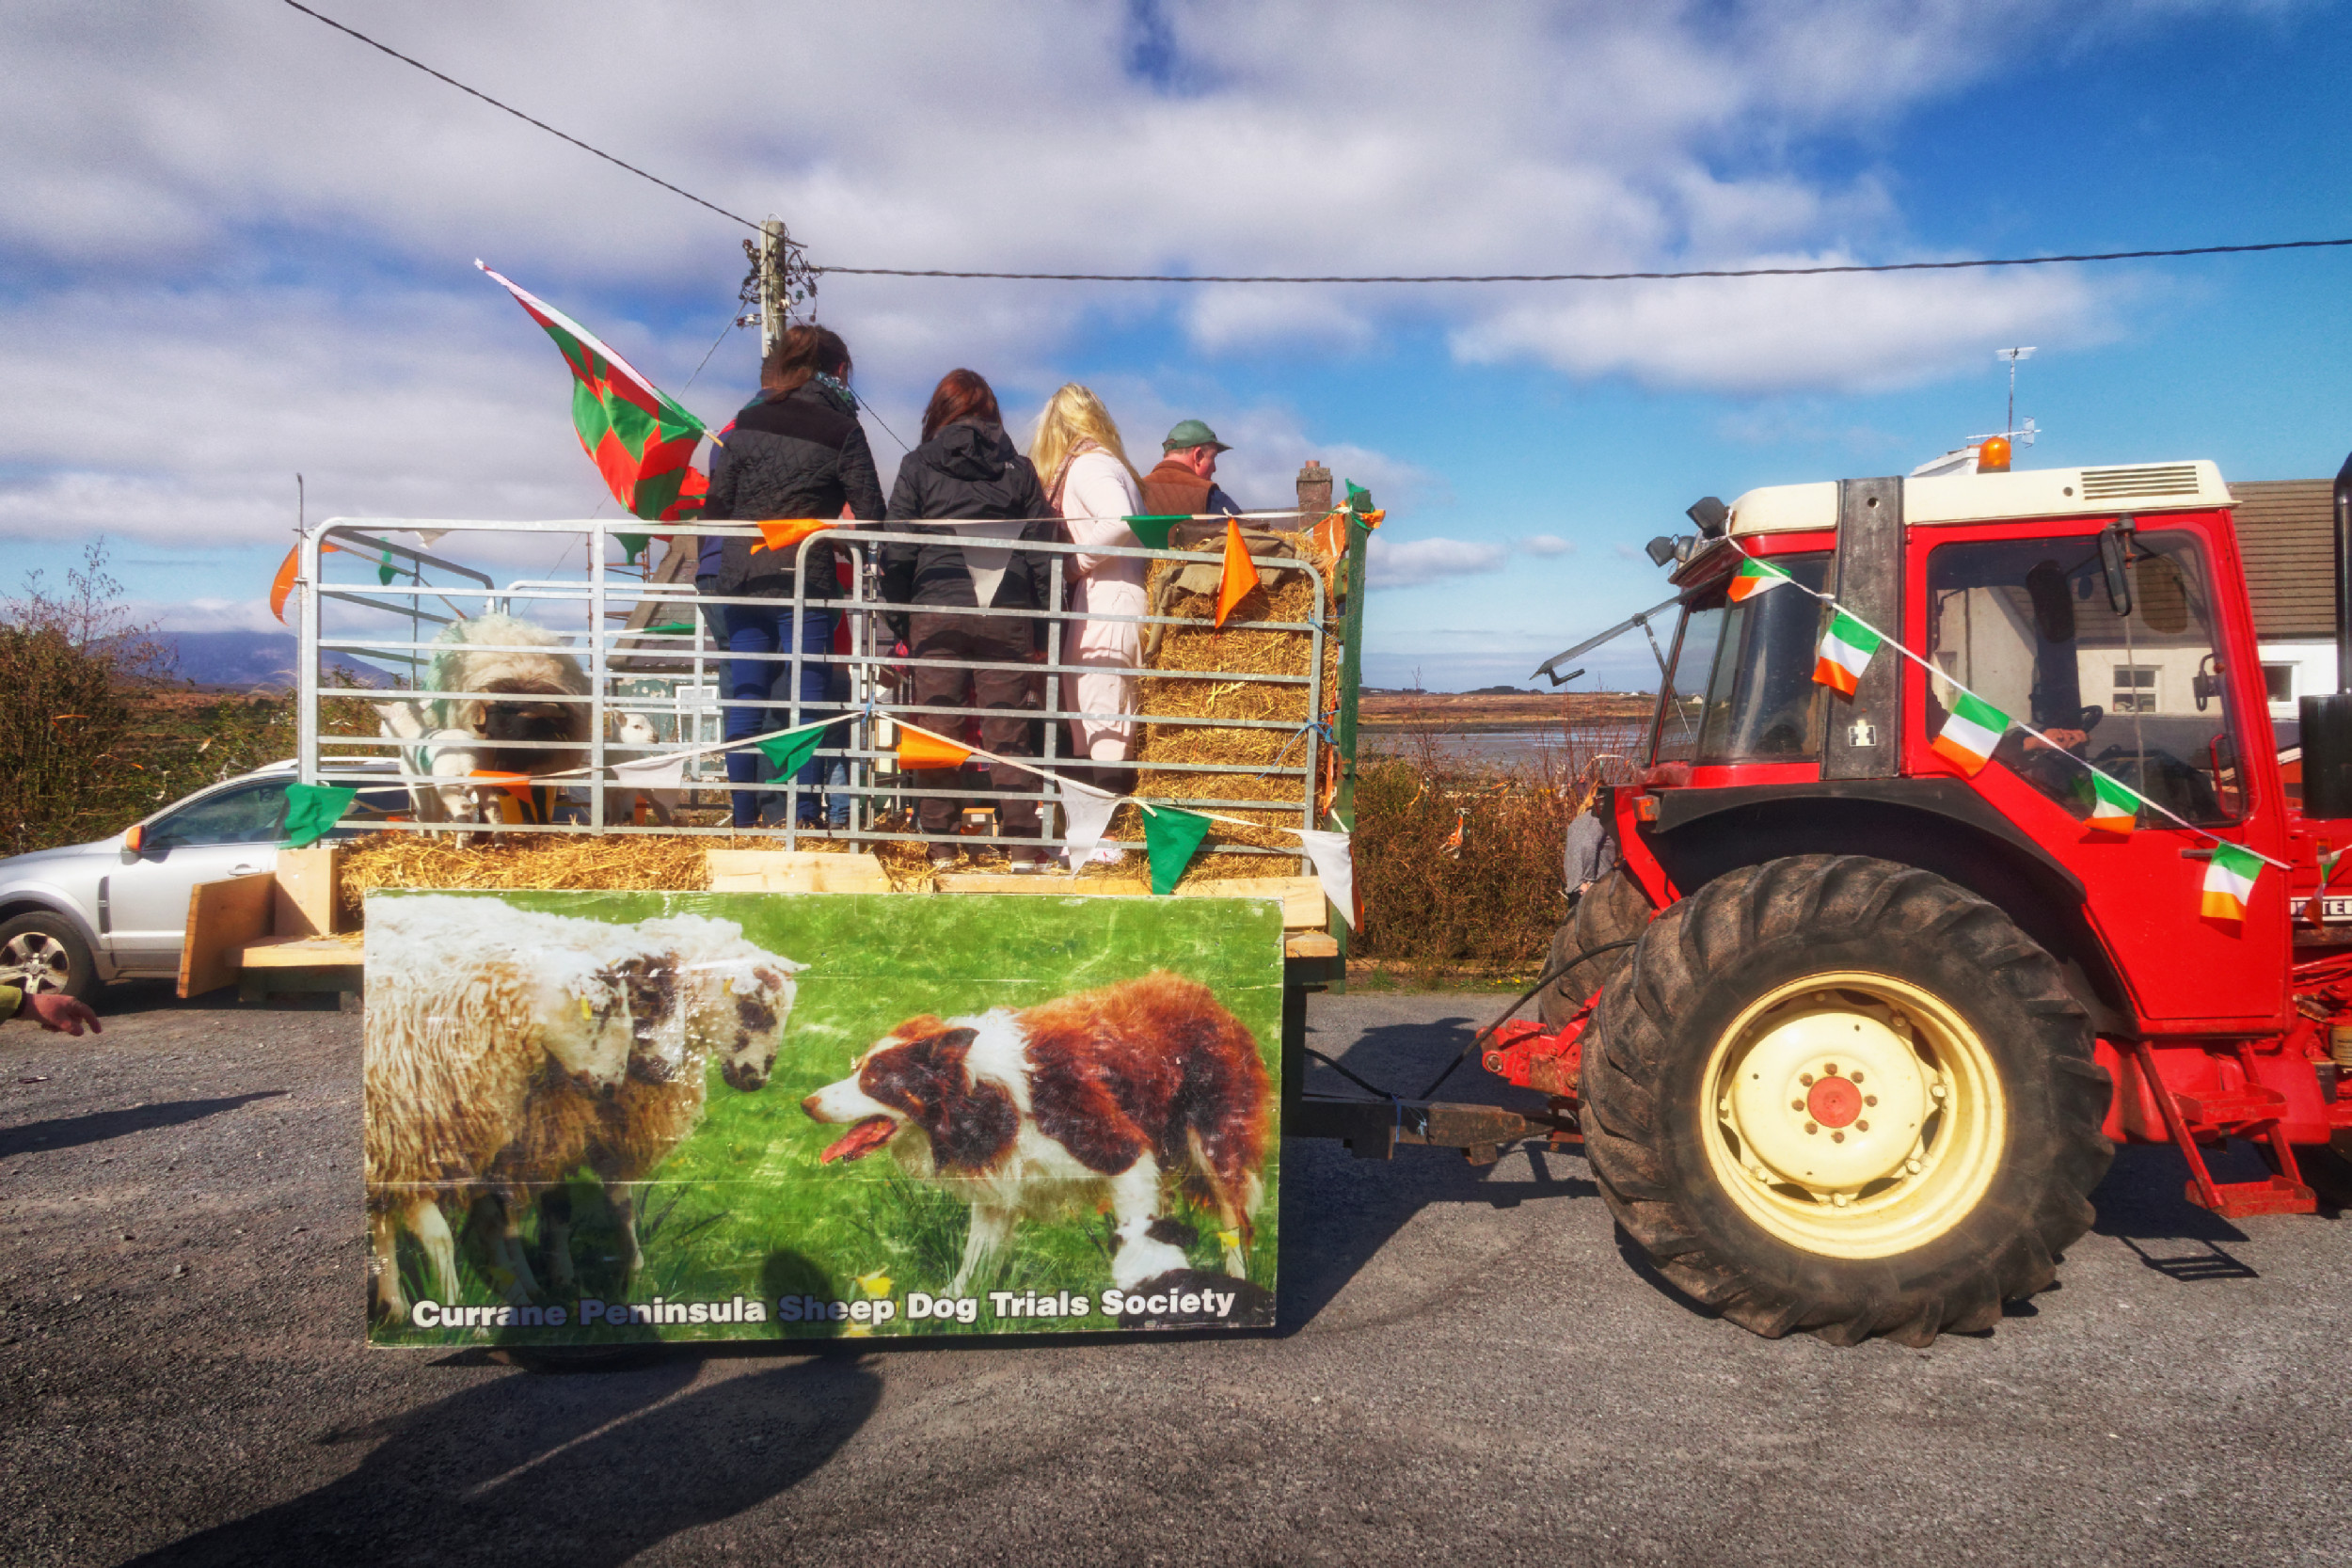 20160320132551-ie-achill-sound_parade-_DxO_13in_DxO96